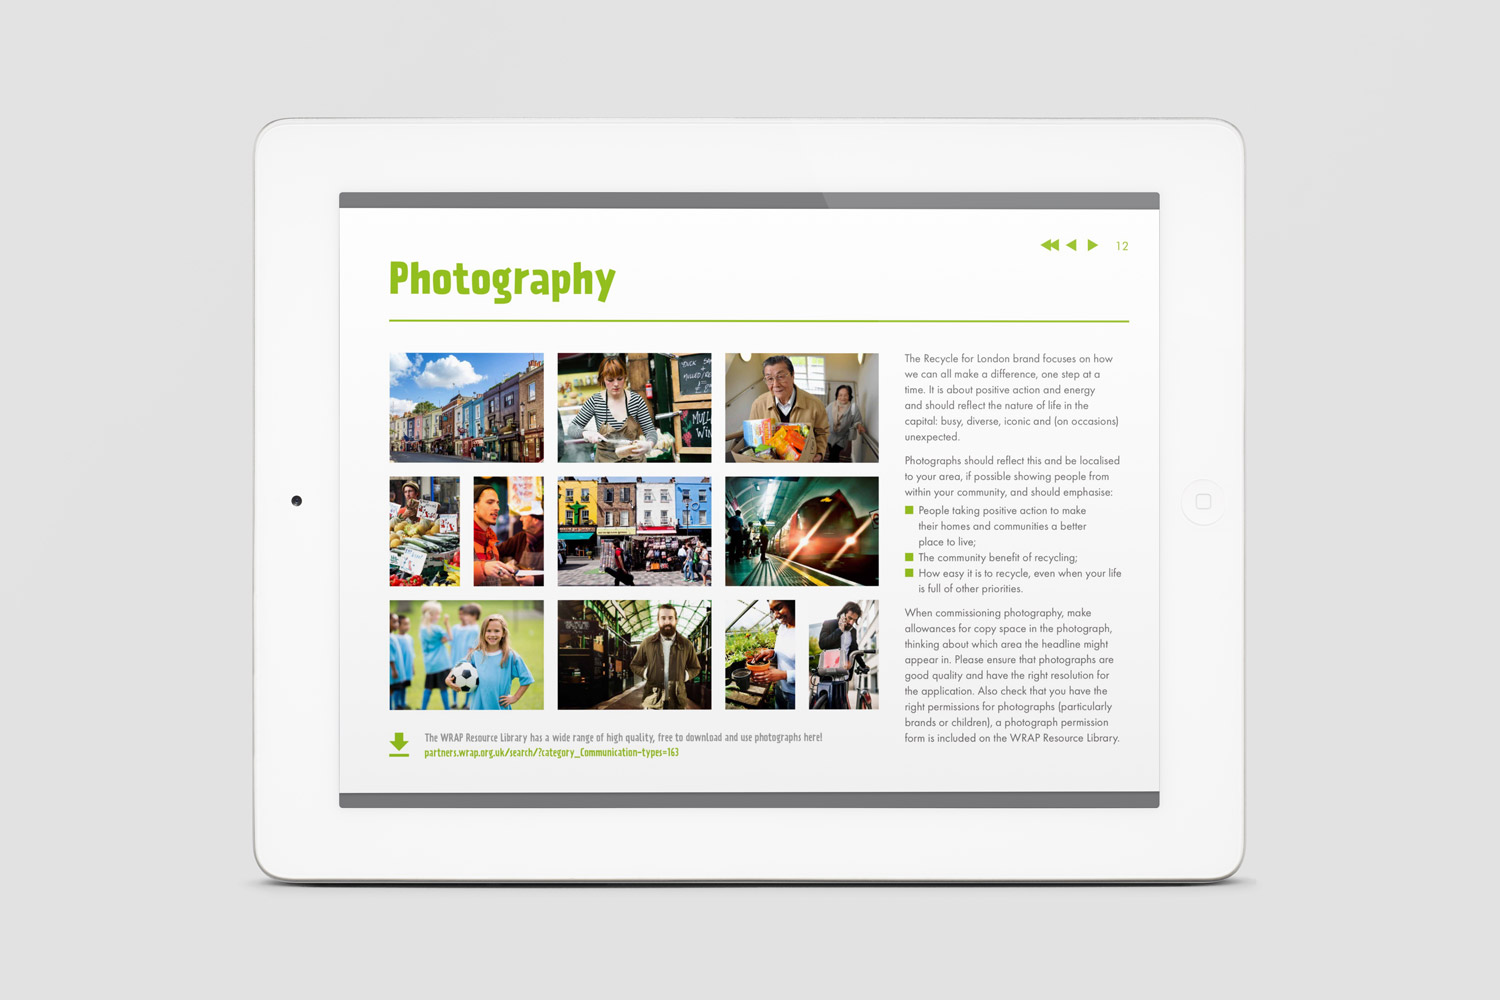 Recycle-for-London-Brand-Guidelines-photography-iPad-leaflet-by-Get-it-Sorted.jpg